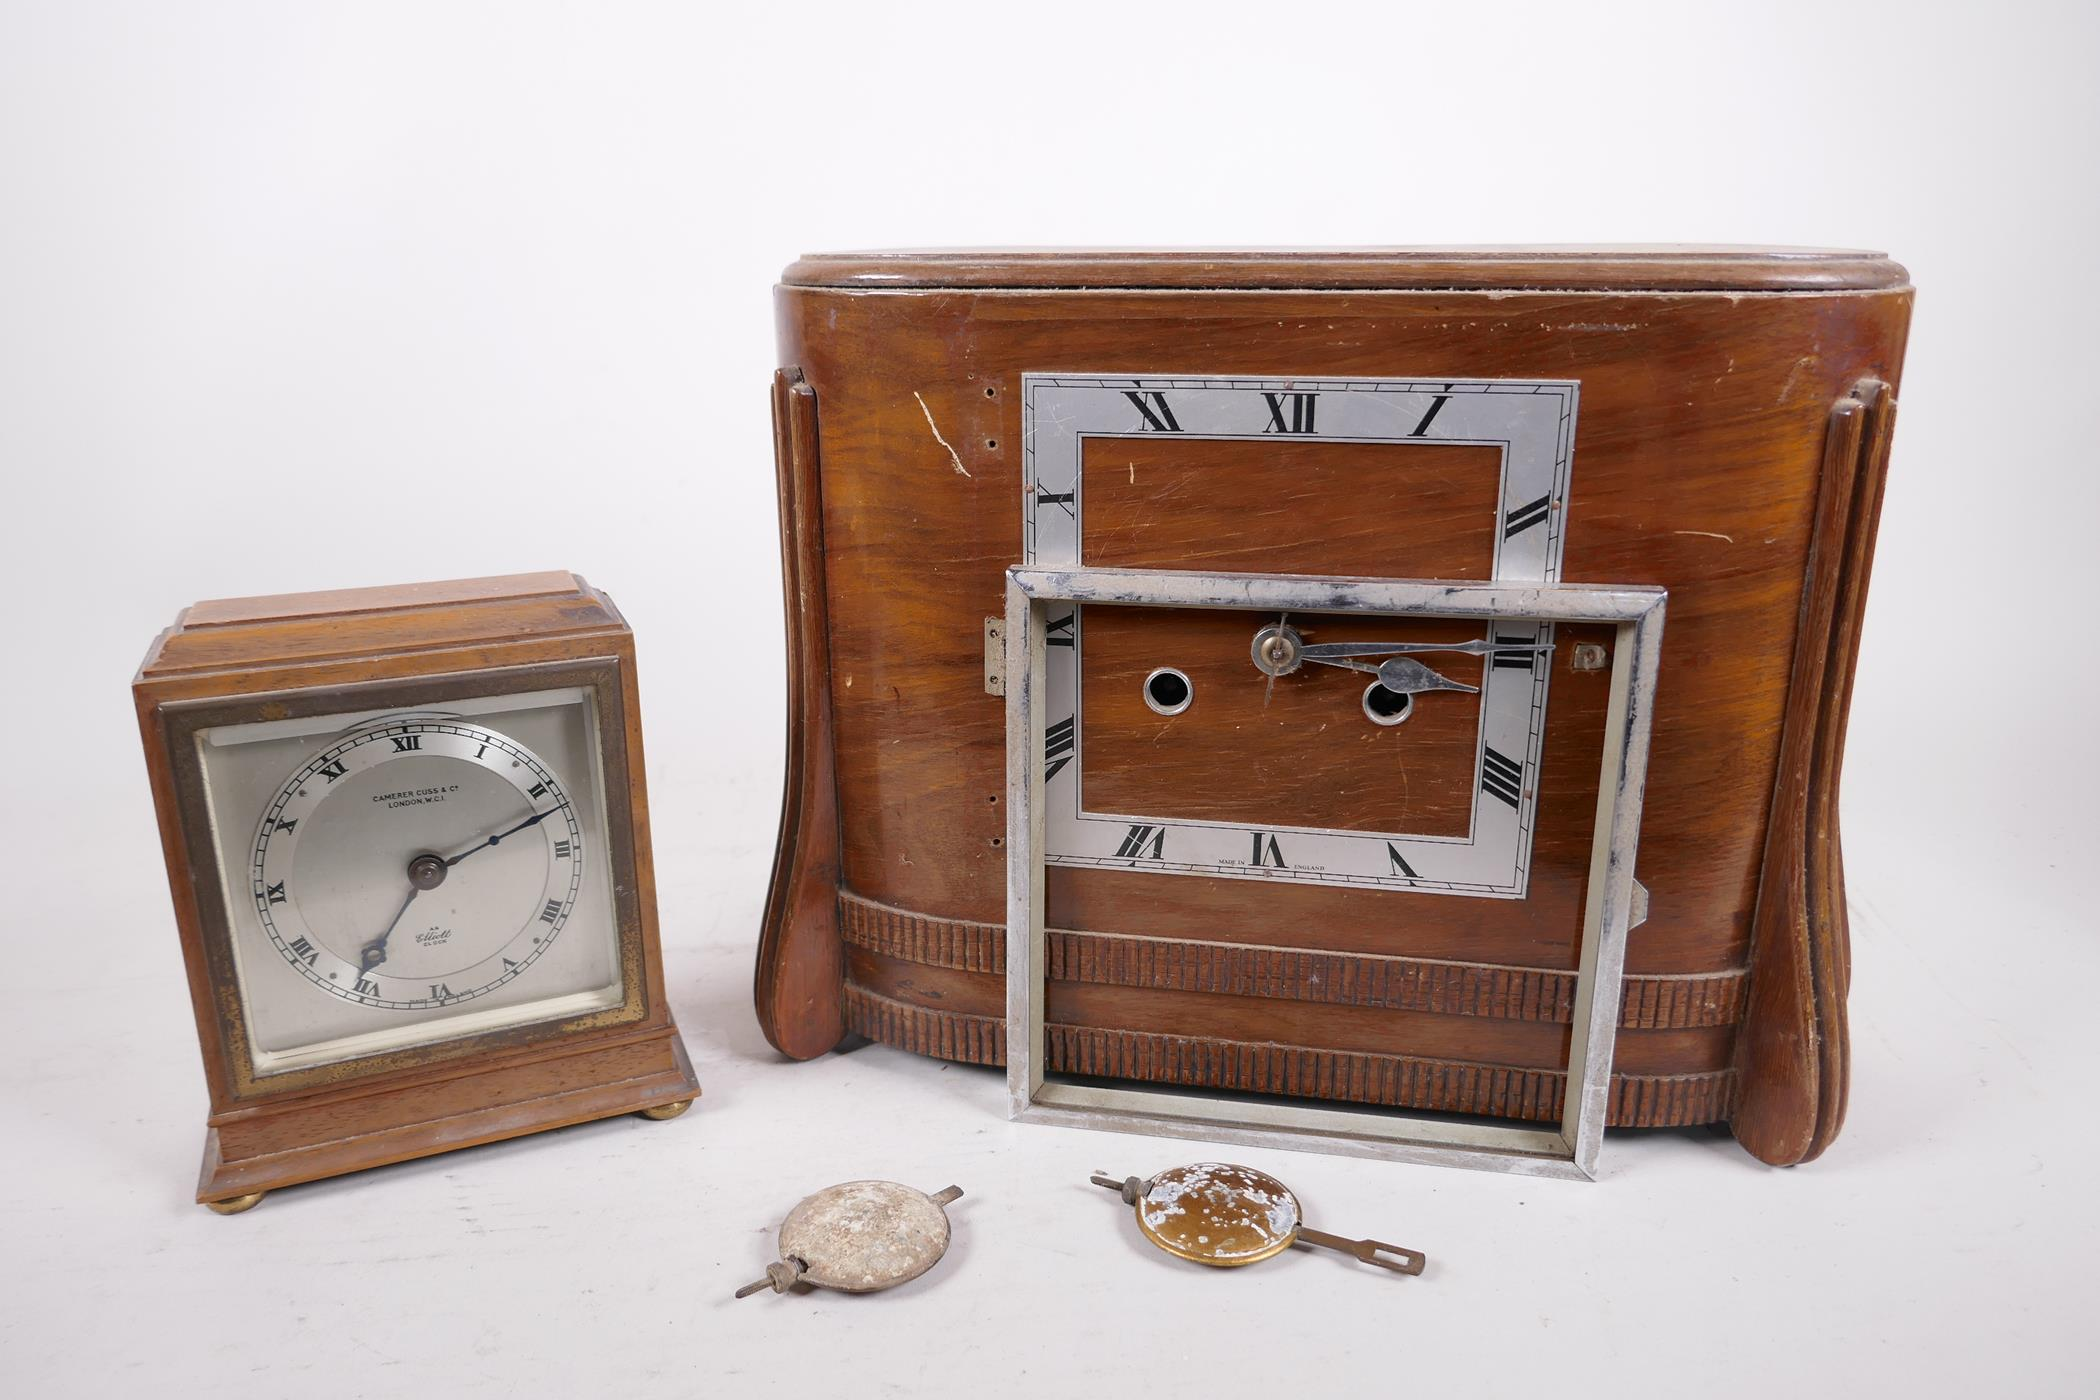 A Carrera Cuss walnut cased mantel clock, the silvered dial and chapter ring with Roman numerals and